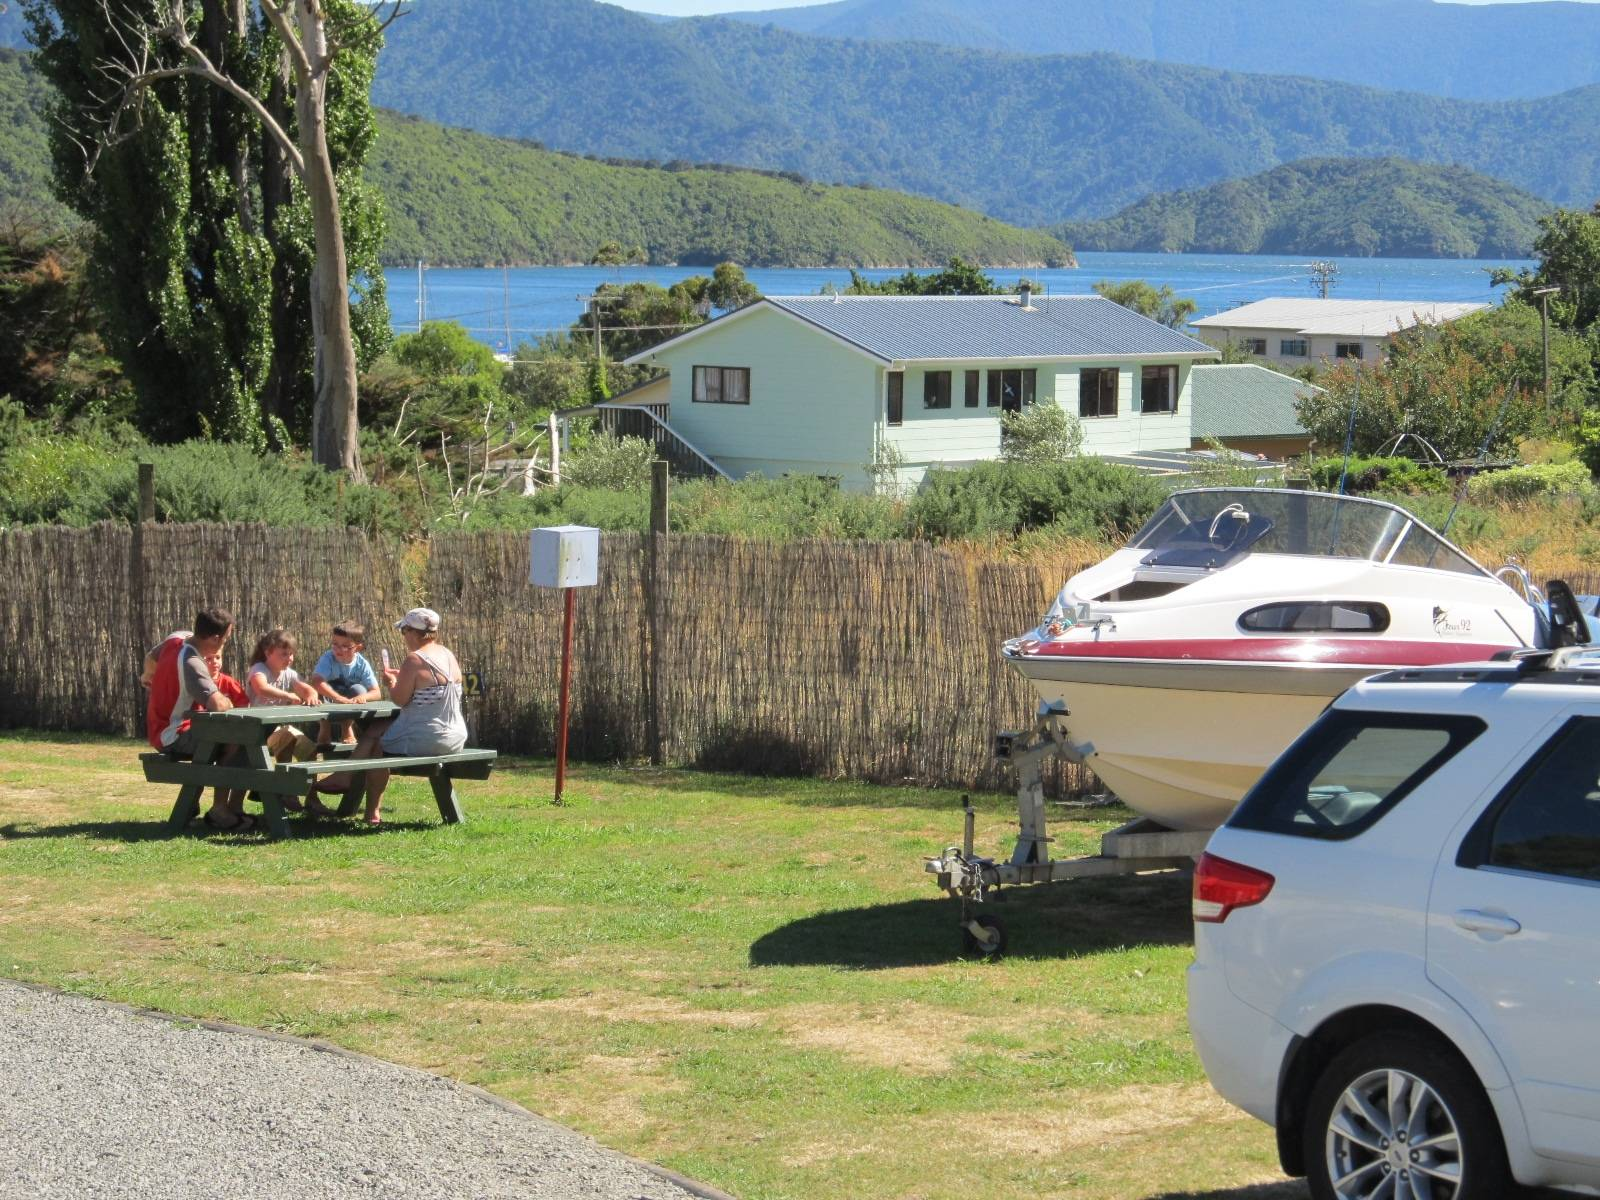 Picton's Waikawa Bay Holiday Park & Park Motels